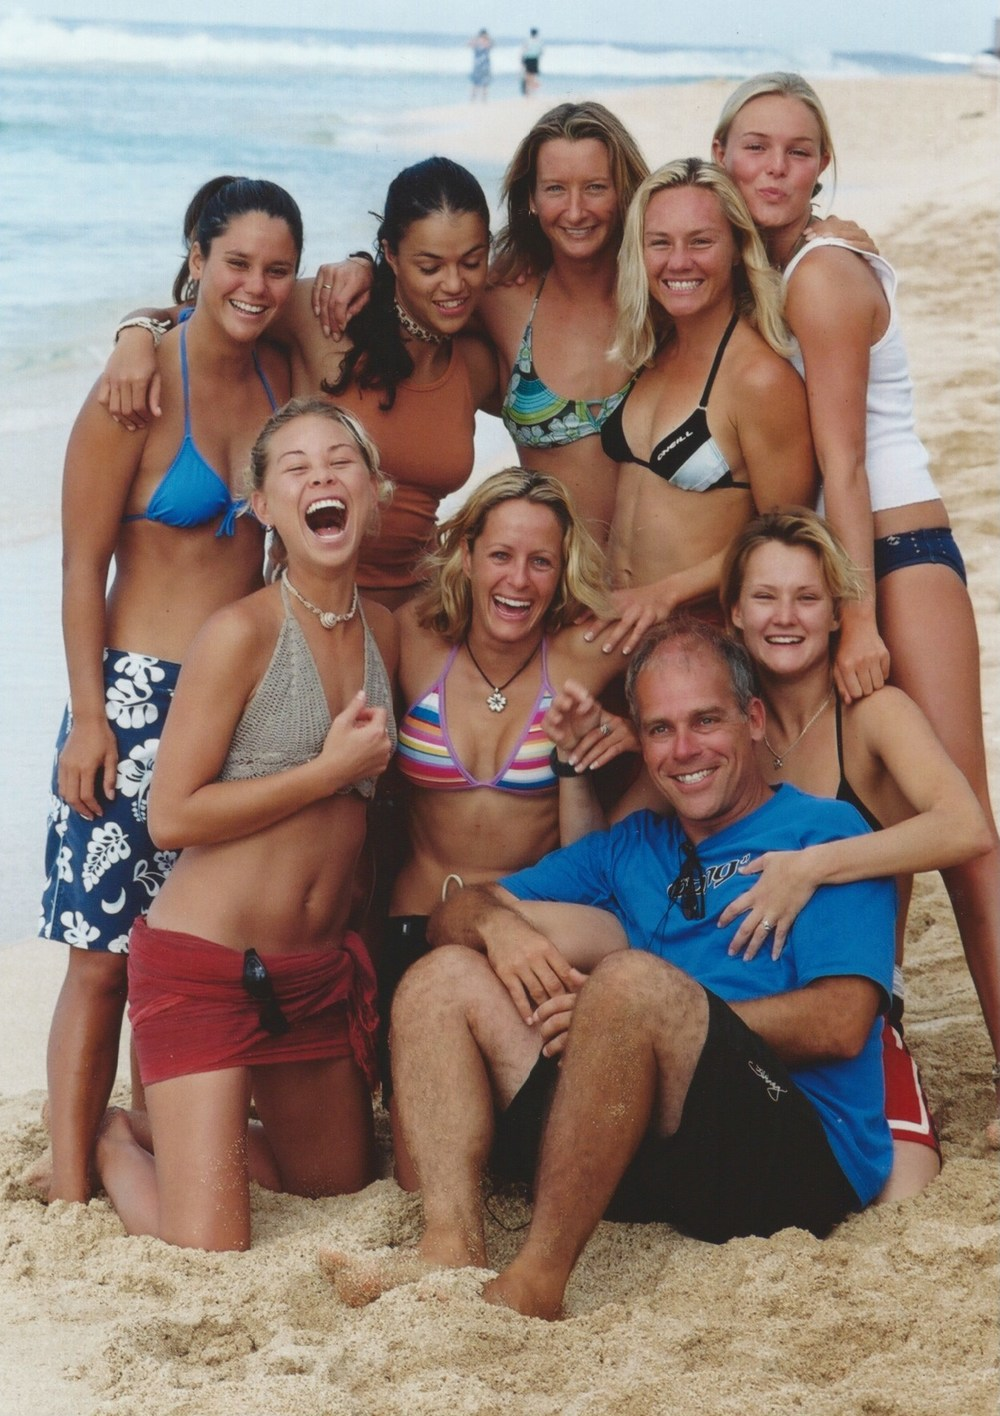 Blue Crush,  North Shore Oahu  Top : Megan Abudo, Michelle Rodriguez, Layne Beachley, Rochelle Ballard, Kate Bosworth.   Bottom : Sanoe Lake, Kate Skarratt,  Rick Dallago,  Keala Kennely,